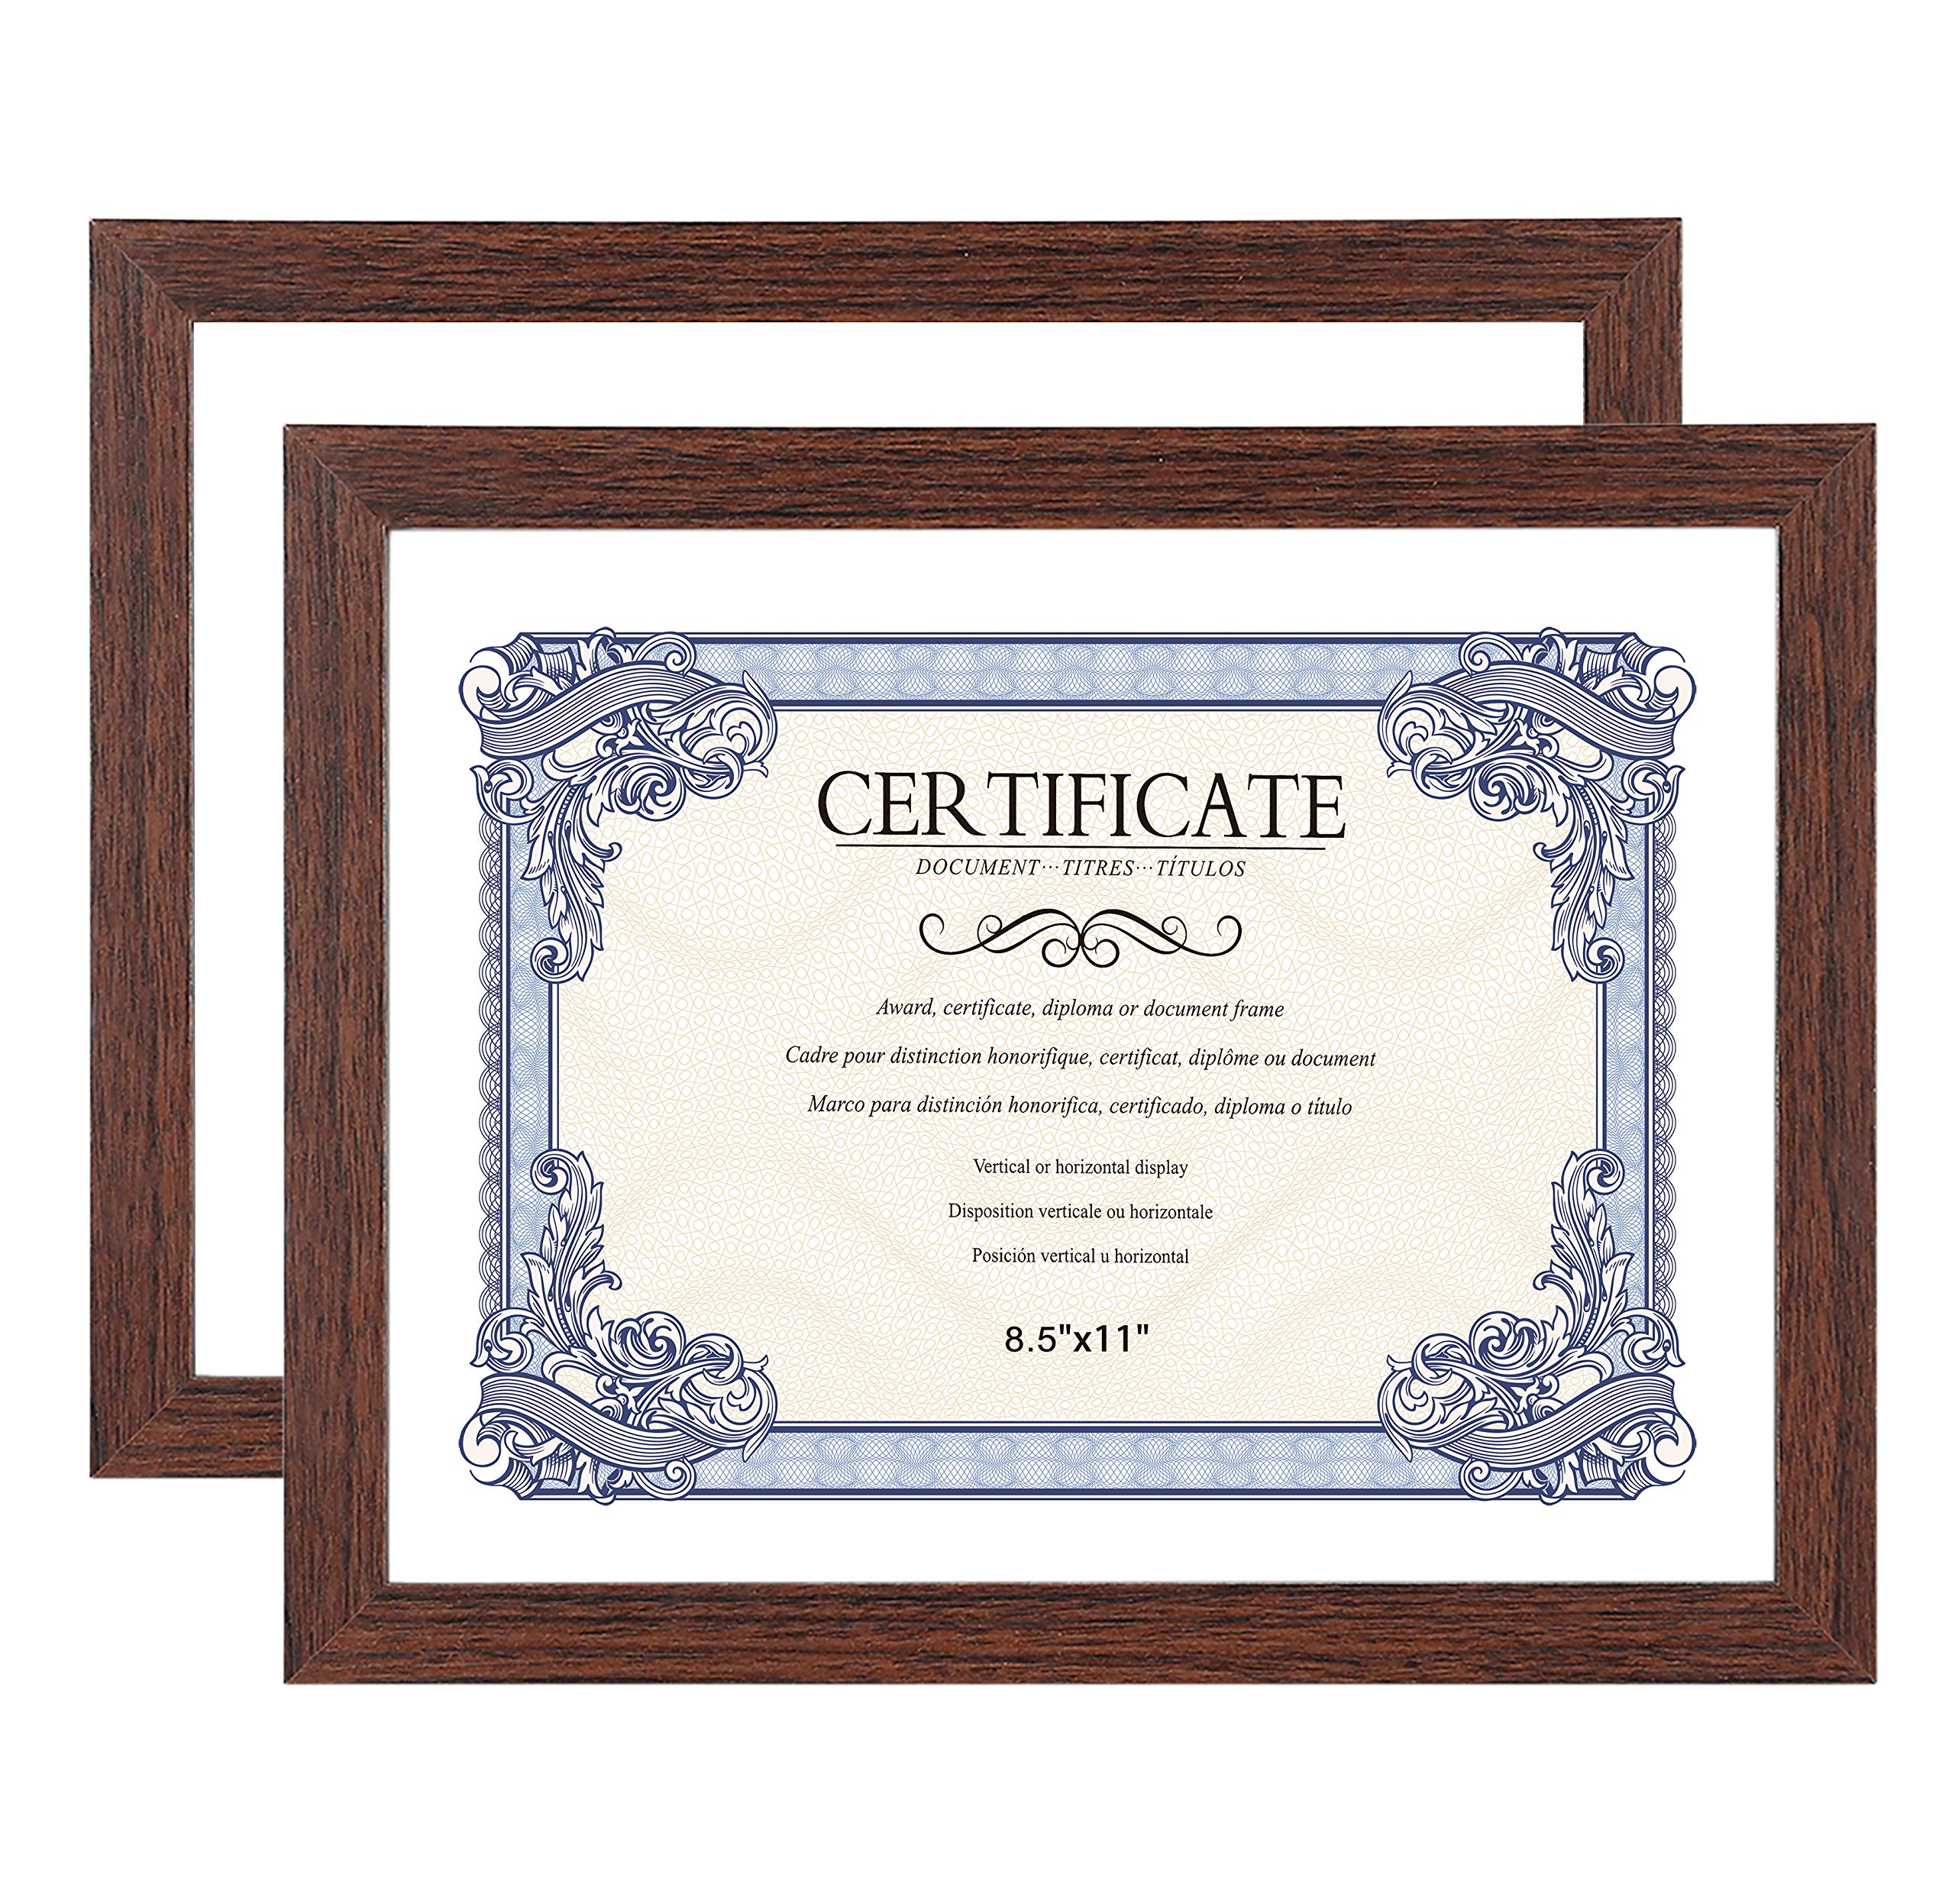 Amistad 8.5X11 Certificate Picture Frame, Document/Diploma Frame with Classic Simple Style, Wood Grain Finish, 2 Pack. by Amistad